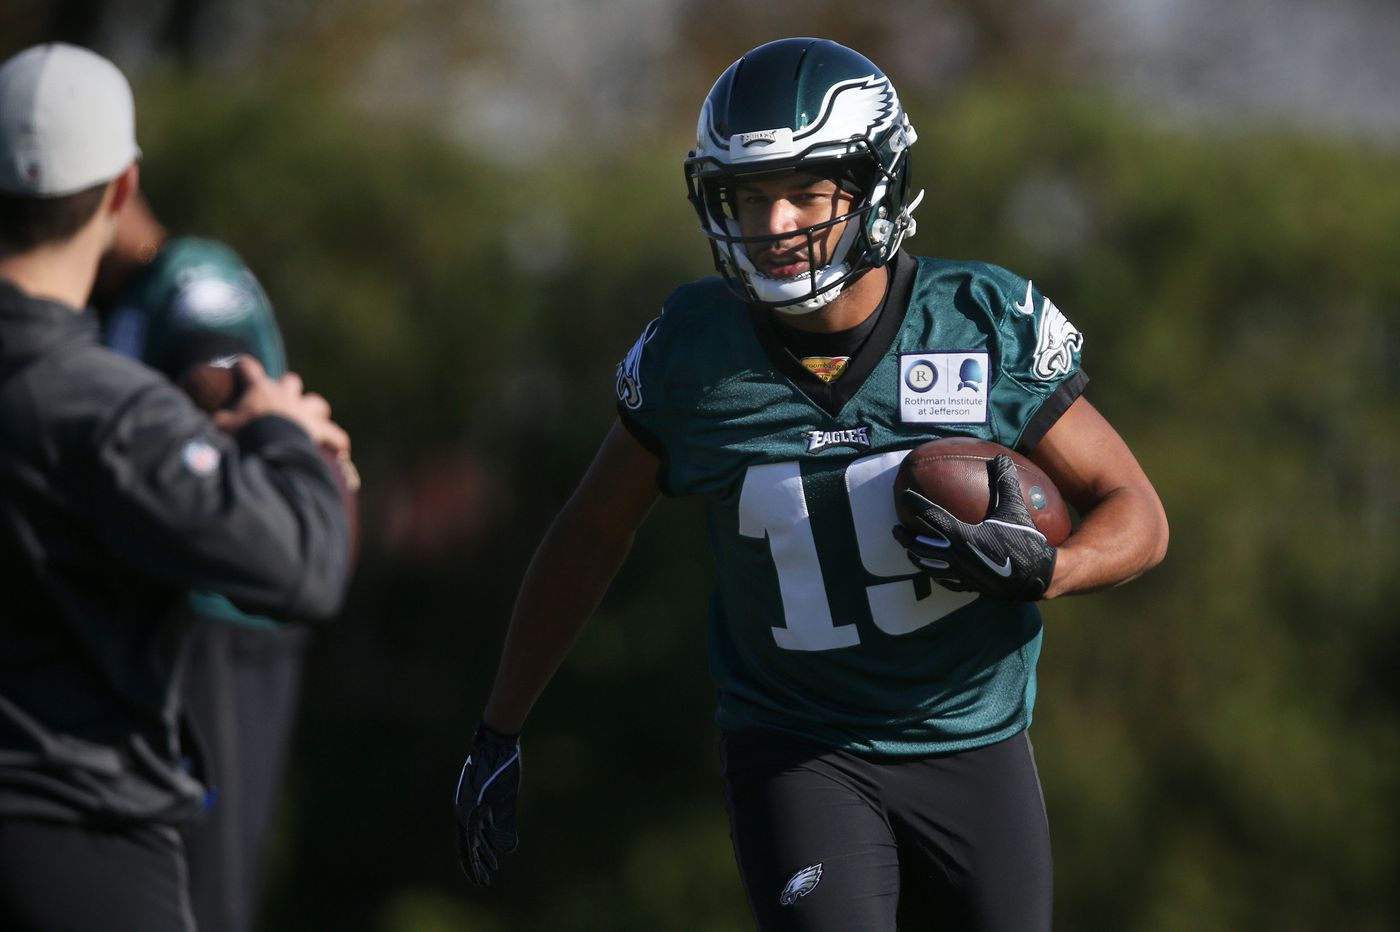 Eagles-Cowboys: Pregame stats that matter for Sunday night | Paul Domowitch